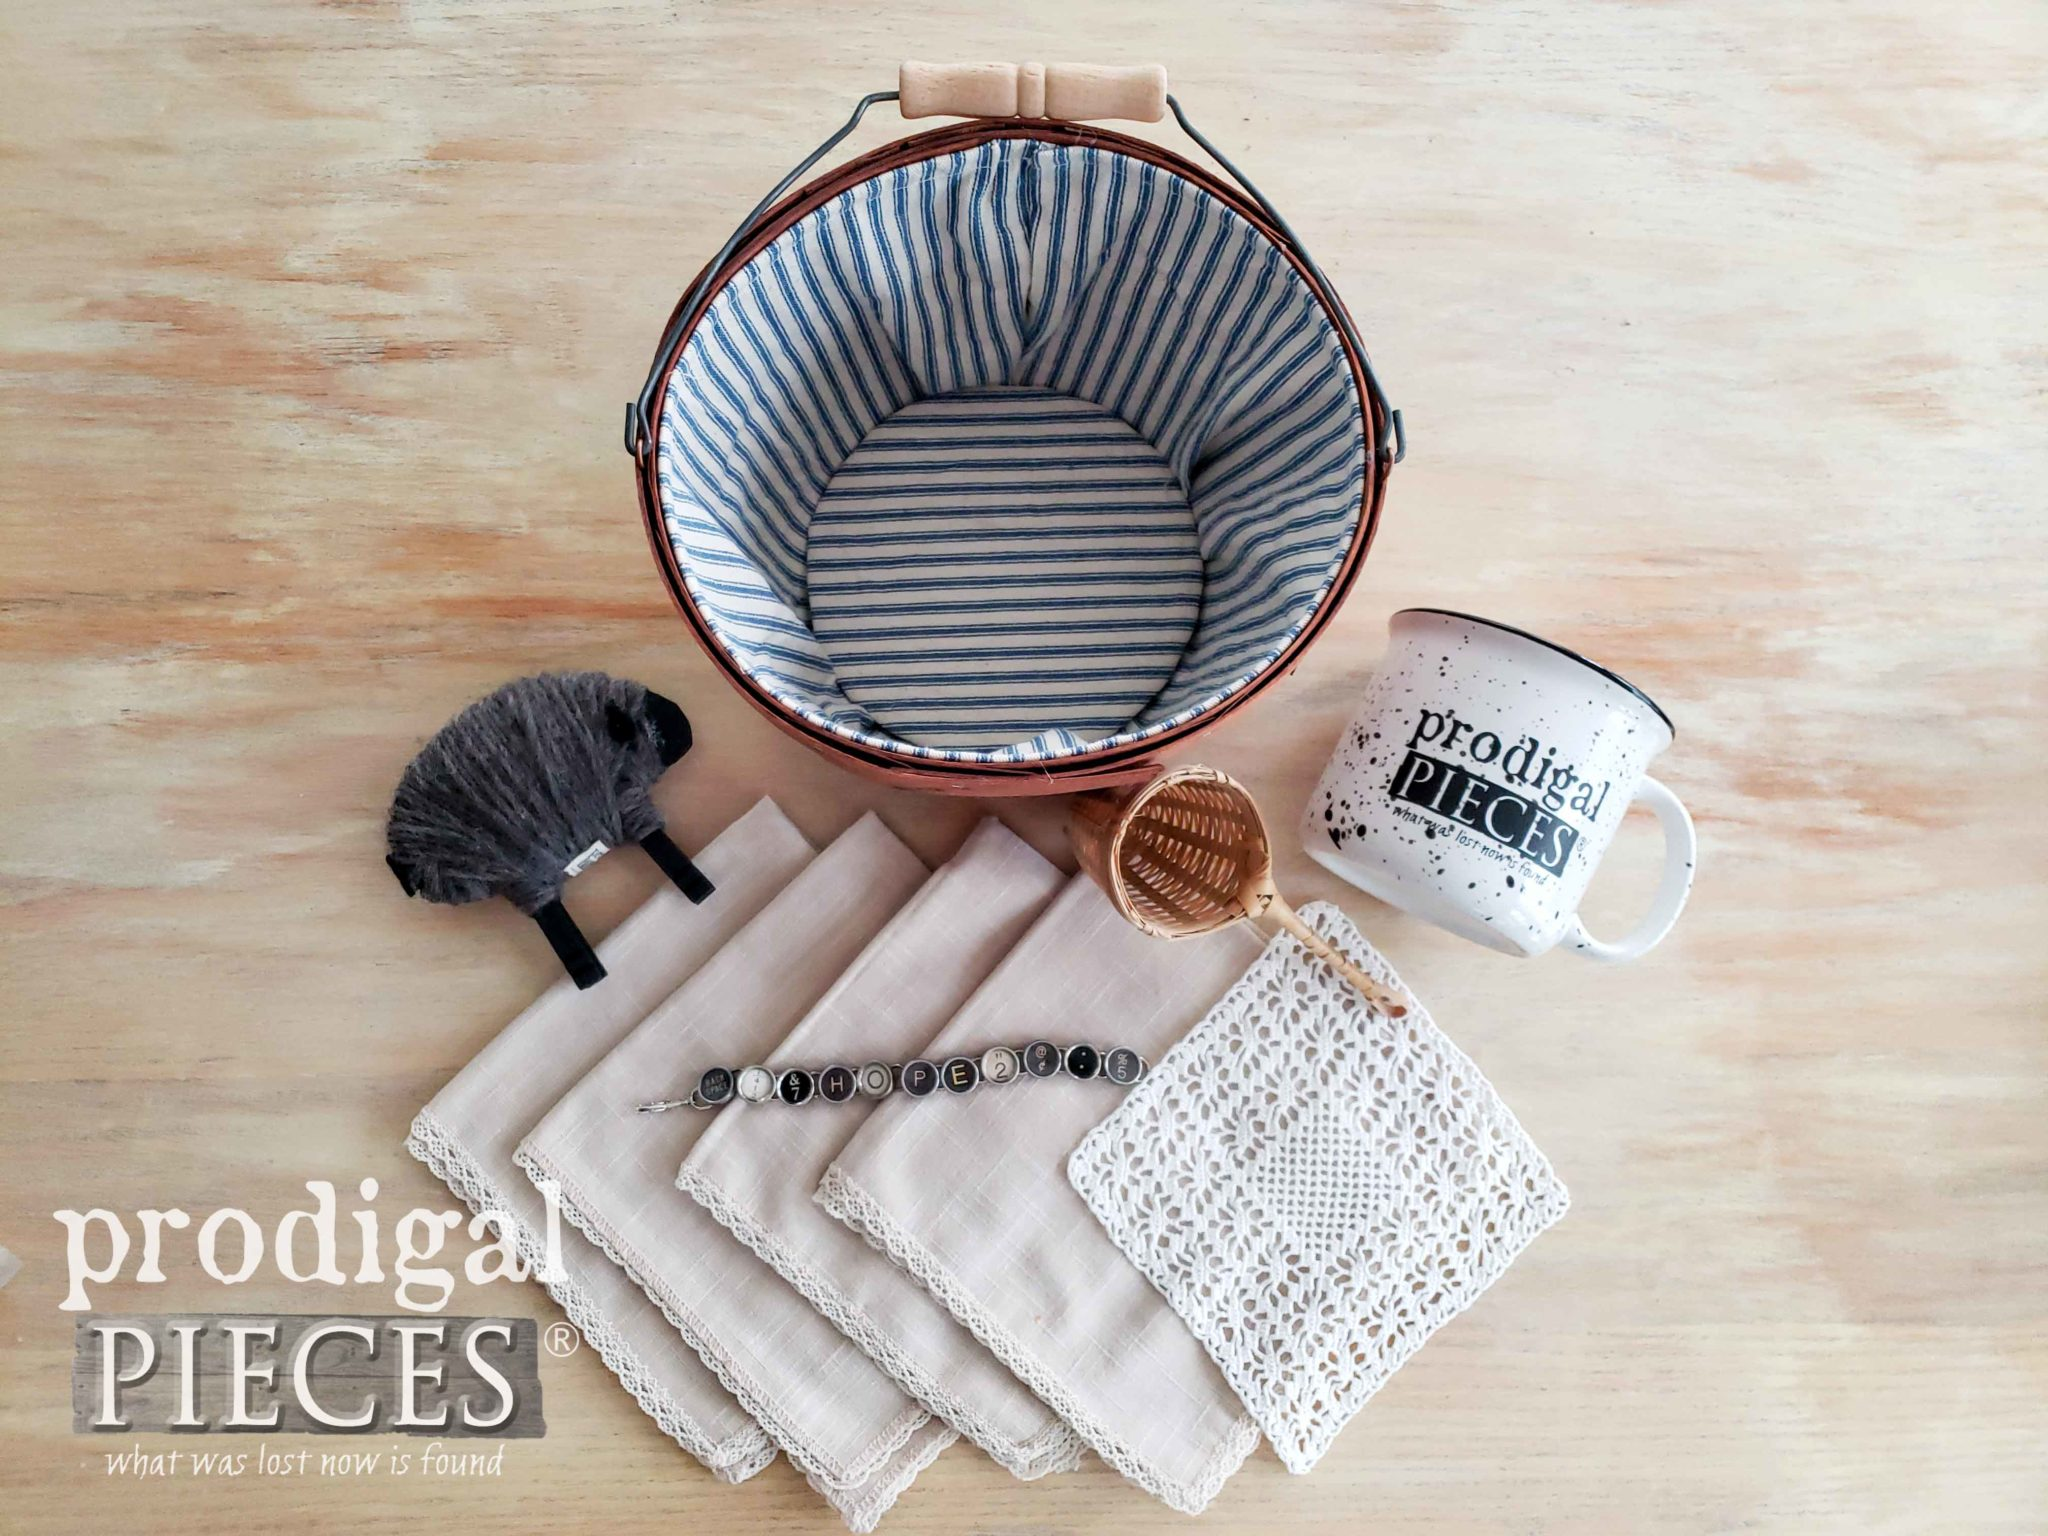 Prodigal Pieces Mother's Day Gift Basket Giveaway | Head to prodigalpieces.com #prodigalpieces #farmhouse #giveaway #home #homedecor #mothersday